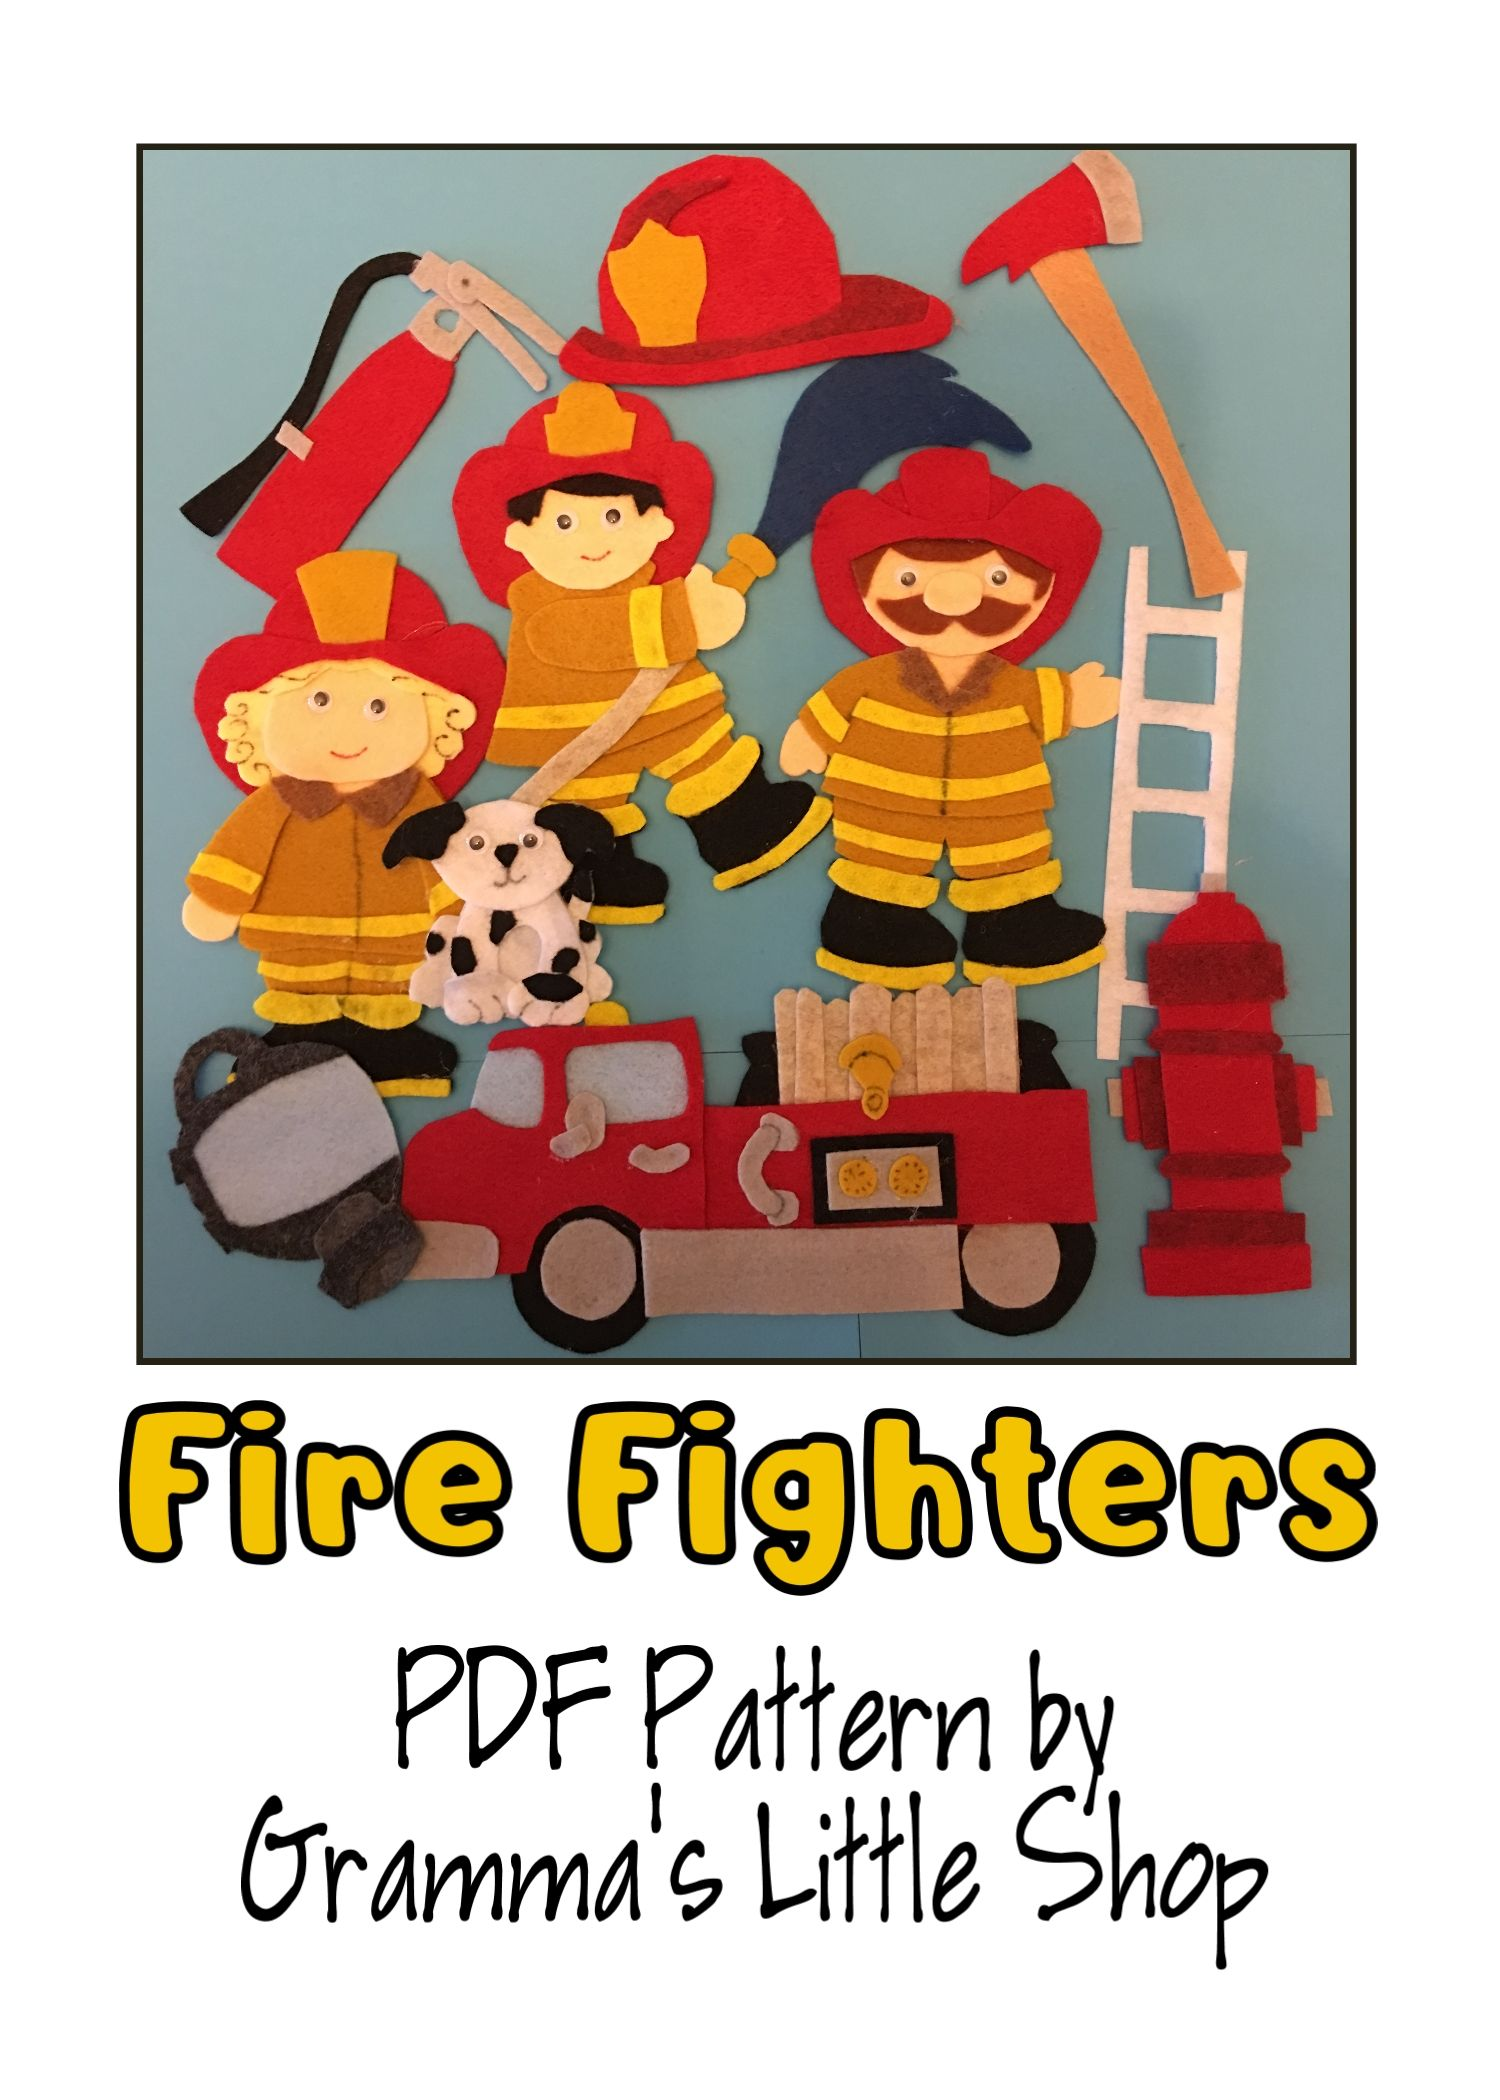 Fire Fighters And Fire Prevention Felt Board Patterns Teaching In The Home Fire Prevention Week Fire Prevention Felt Board Patterns